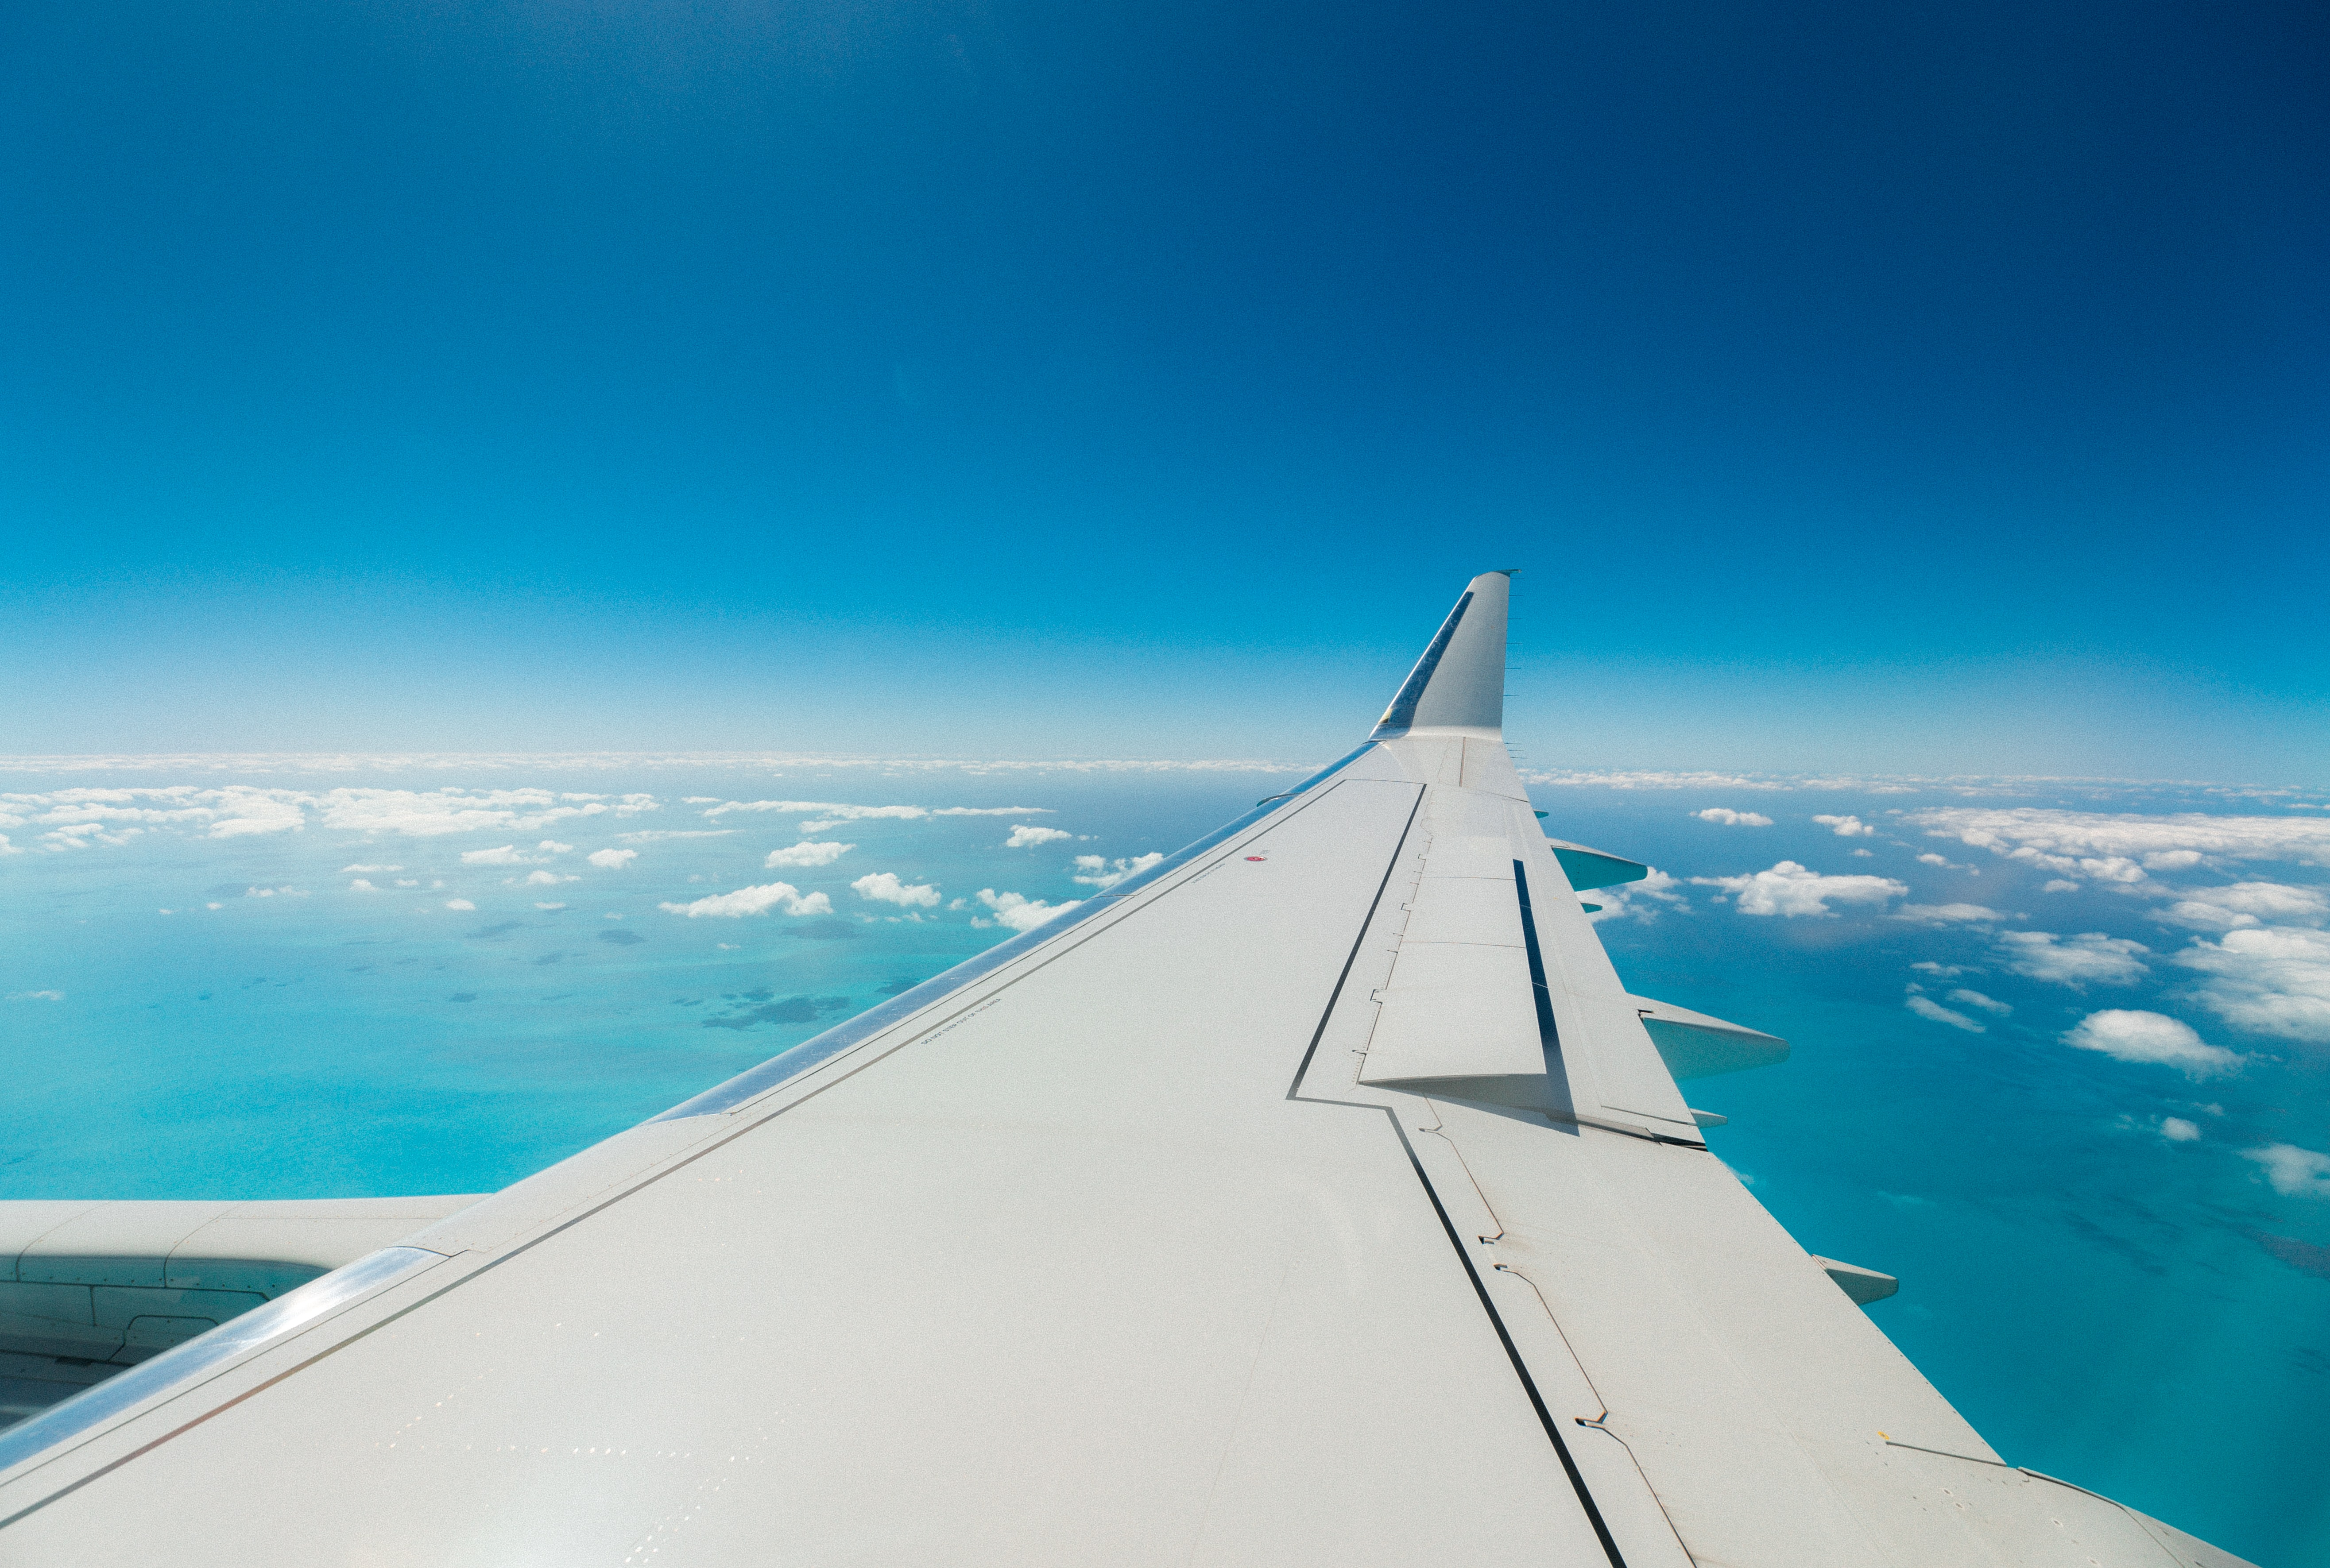 A view from an airplane window on its wing with open wings flaps over patchy clouds